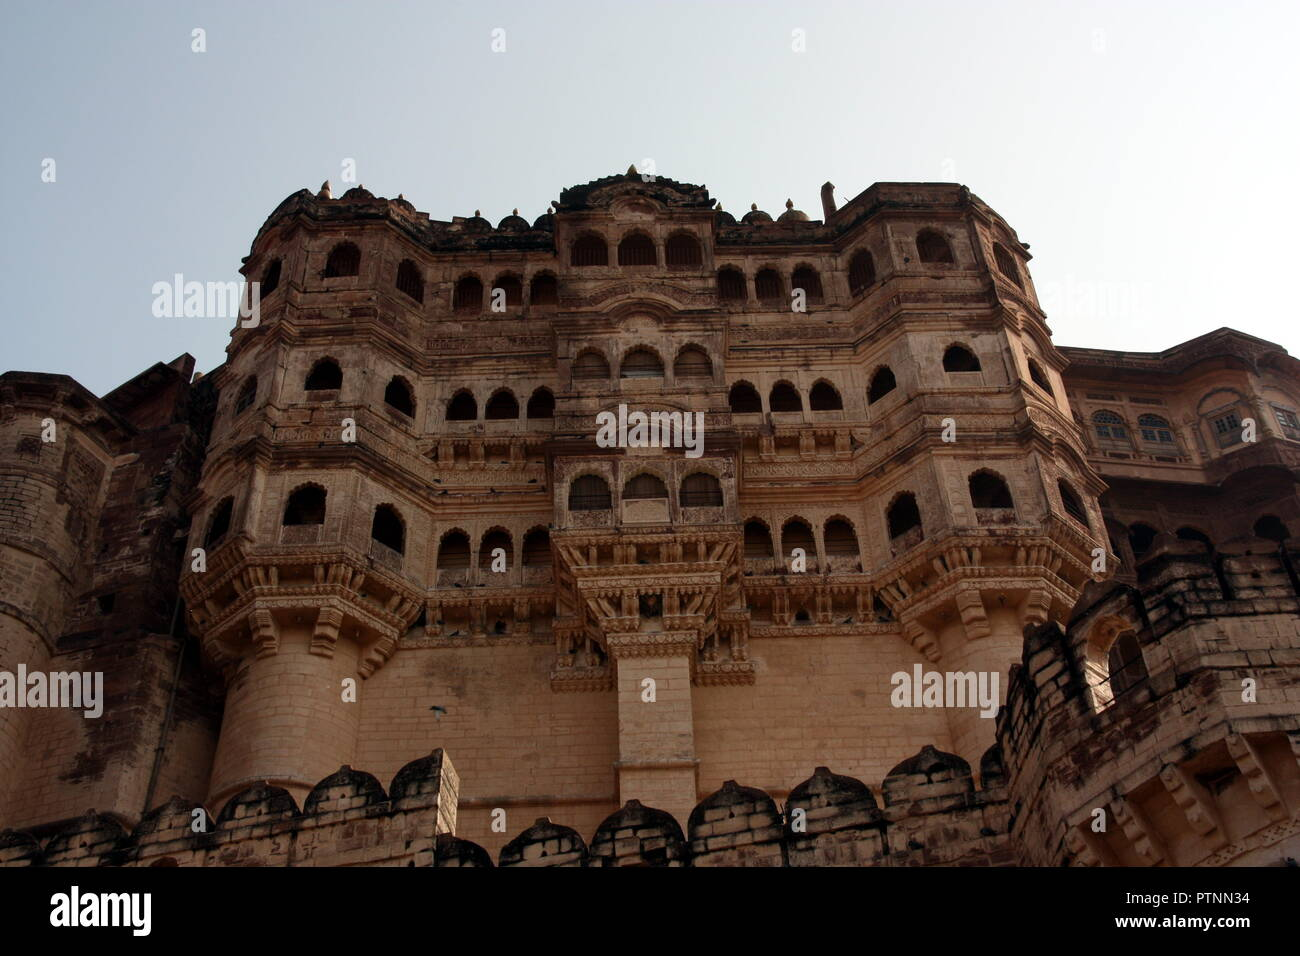 The Mehrangarh Fortress in Jodhpur in India - Stock Image